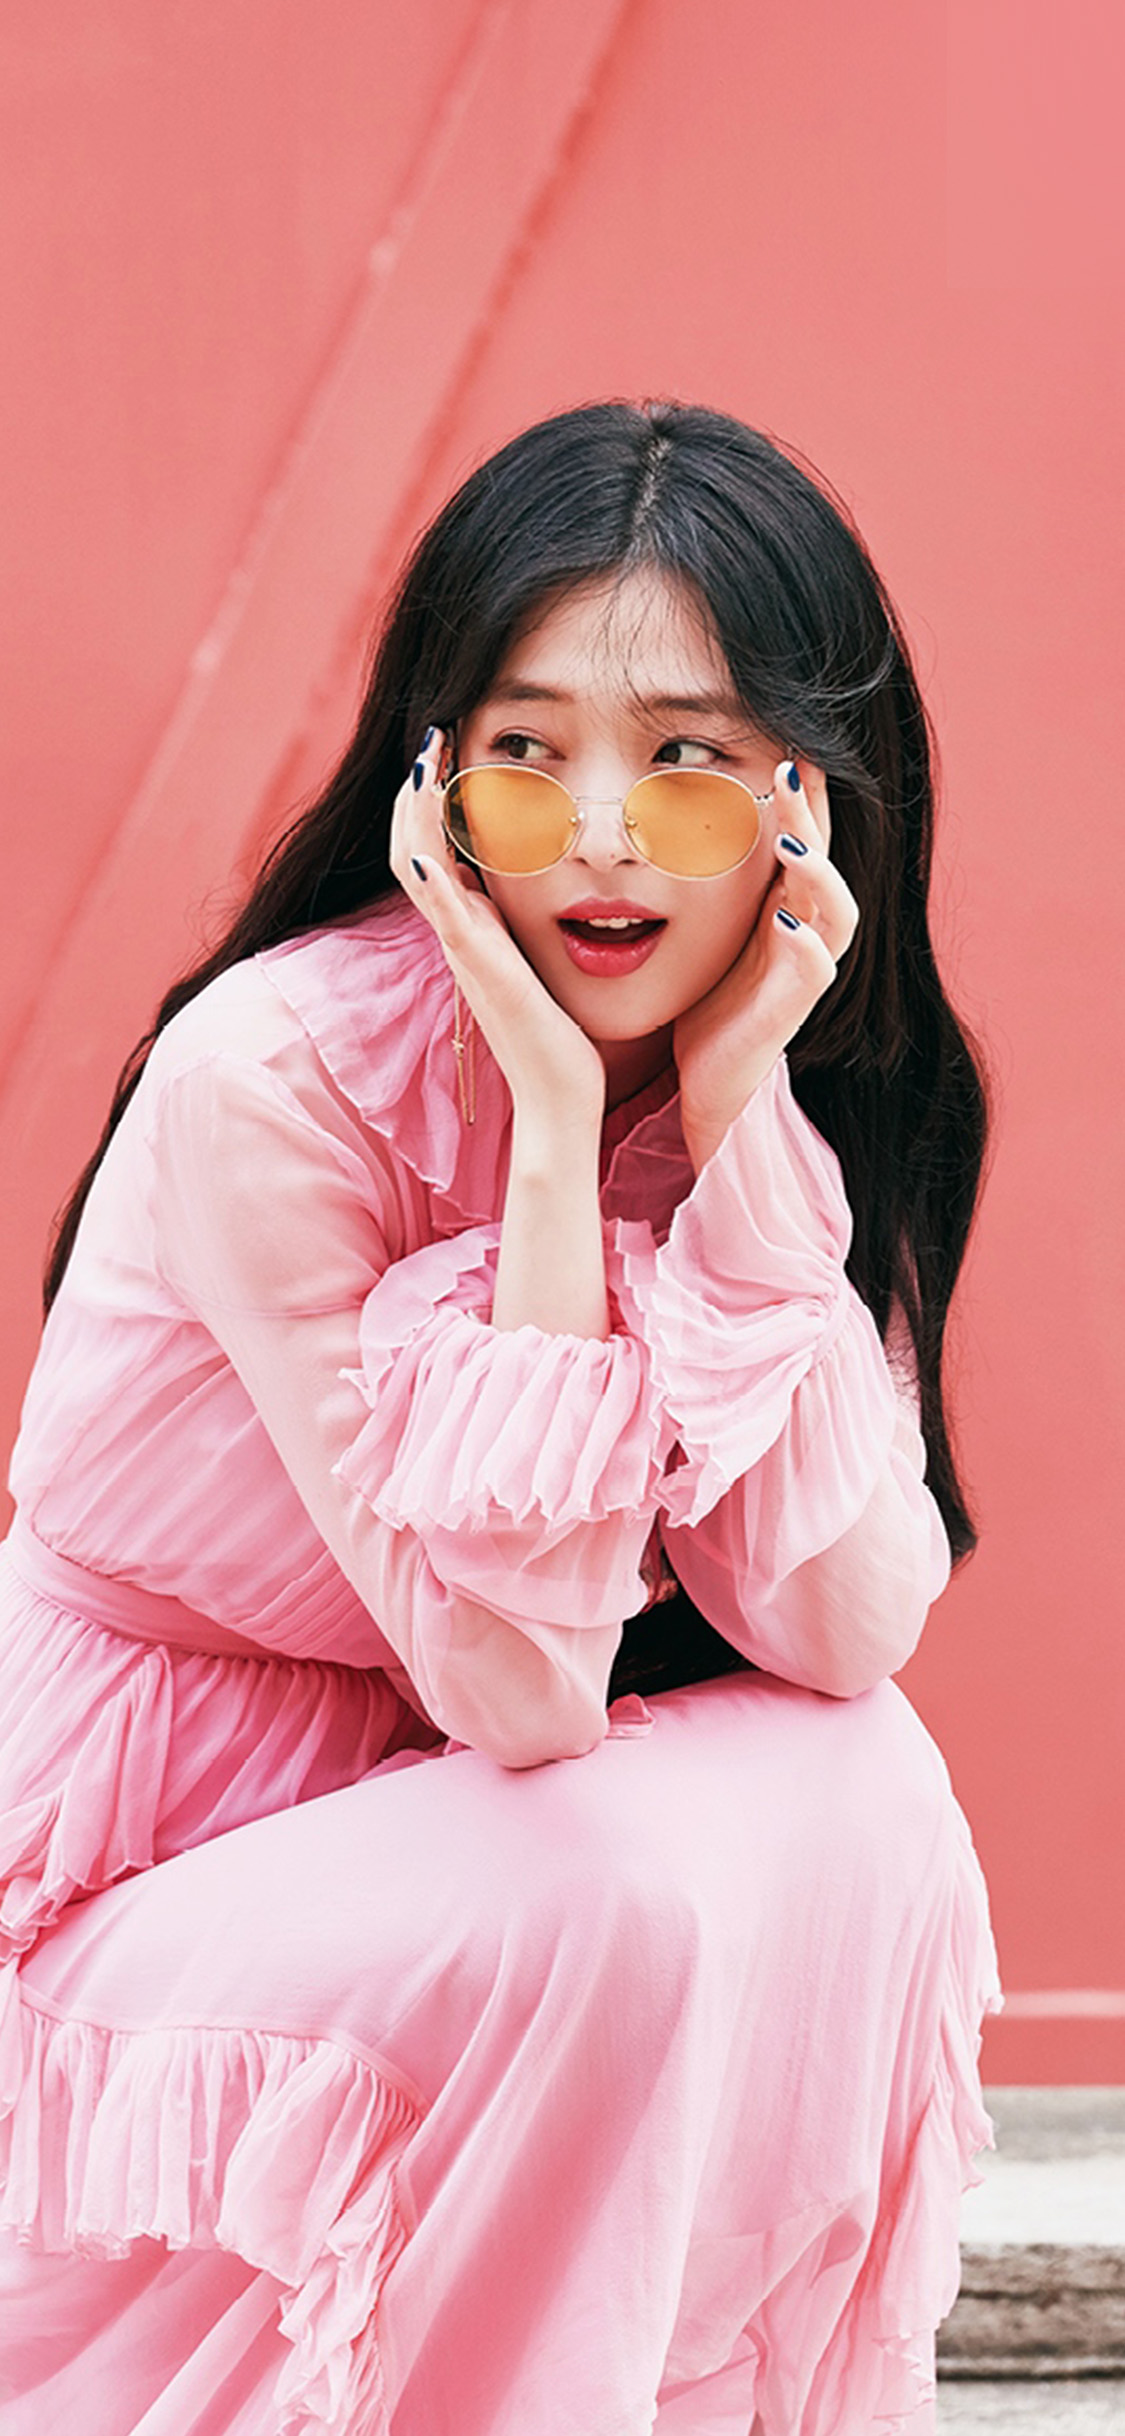 iPhonexpapers.com-Apple-iPhone-wallpaper-ho95-sulli-girl-kpop-pink